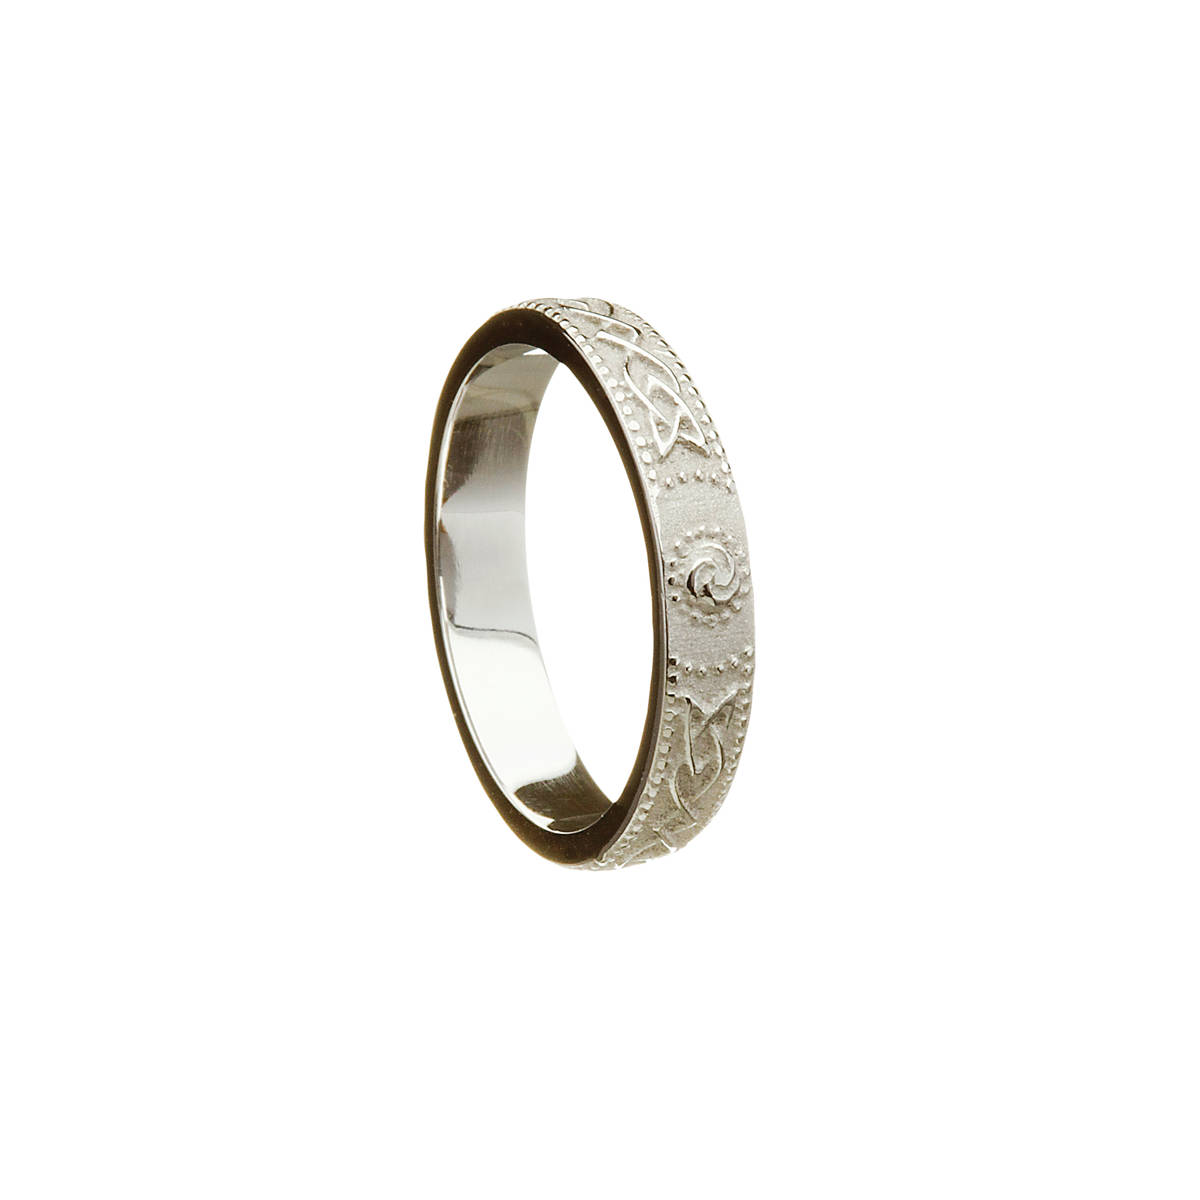 14 carat white gold lady's D/shape Celtic warrior shield 4.1 mm wide approx. band.